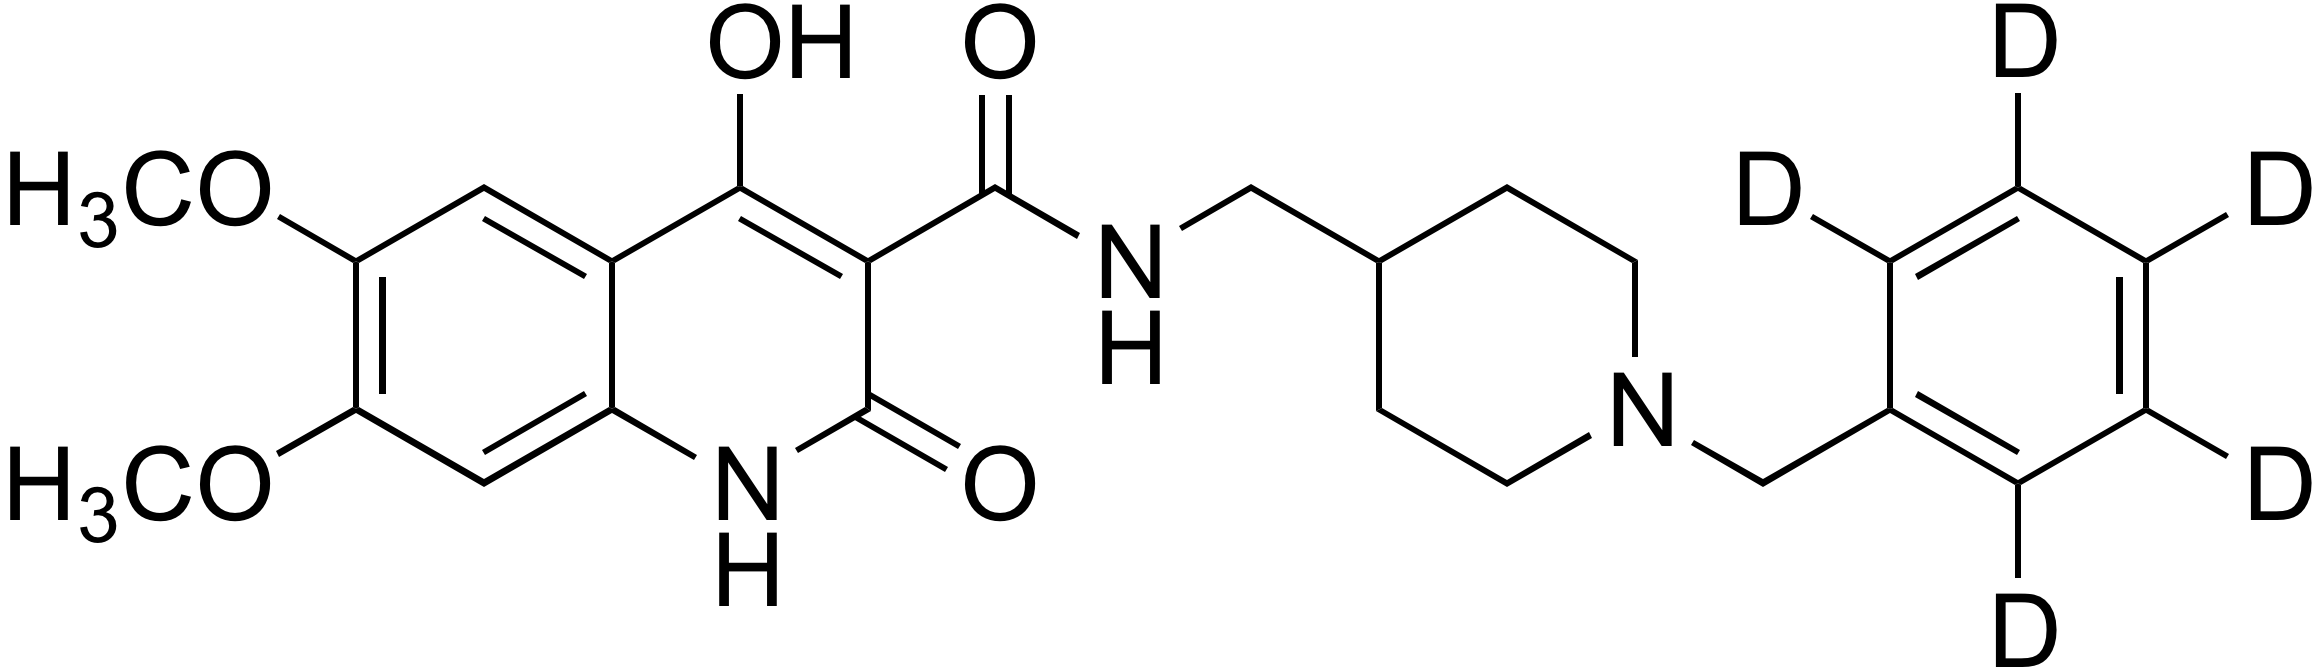 N-((1-Benzyl-d<sub>5</sub>-piperidin-4-yl)methyl)-4-hydroxy-6,7-dimethoxy-2-oxo-1,2-dihydroquinoline-3-carboxamide